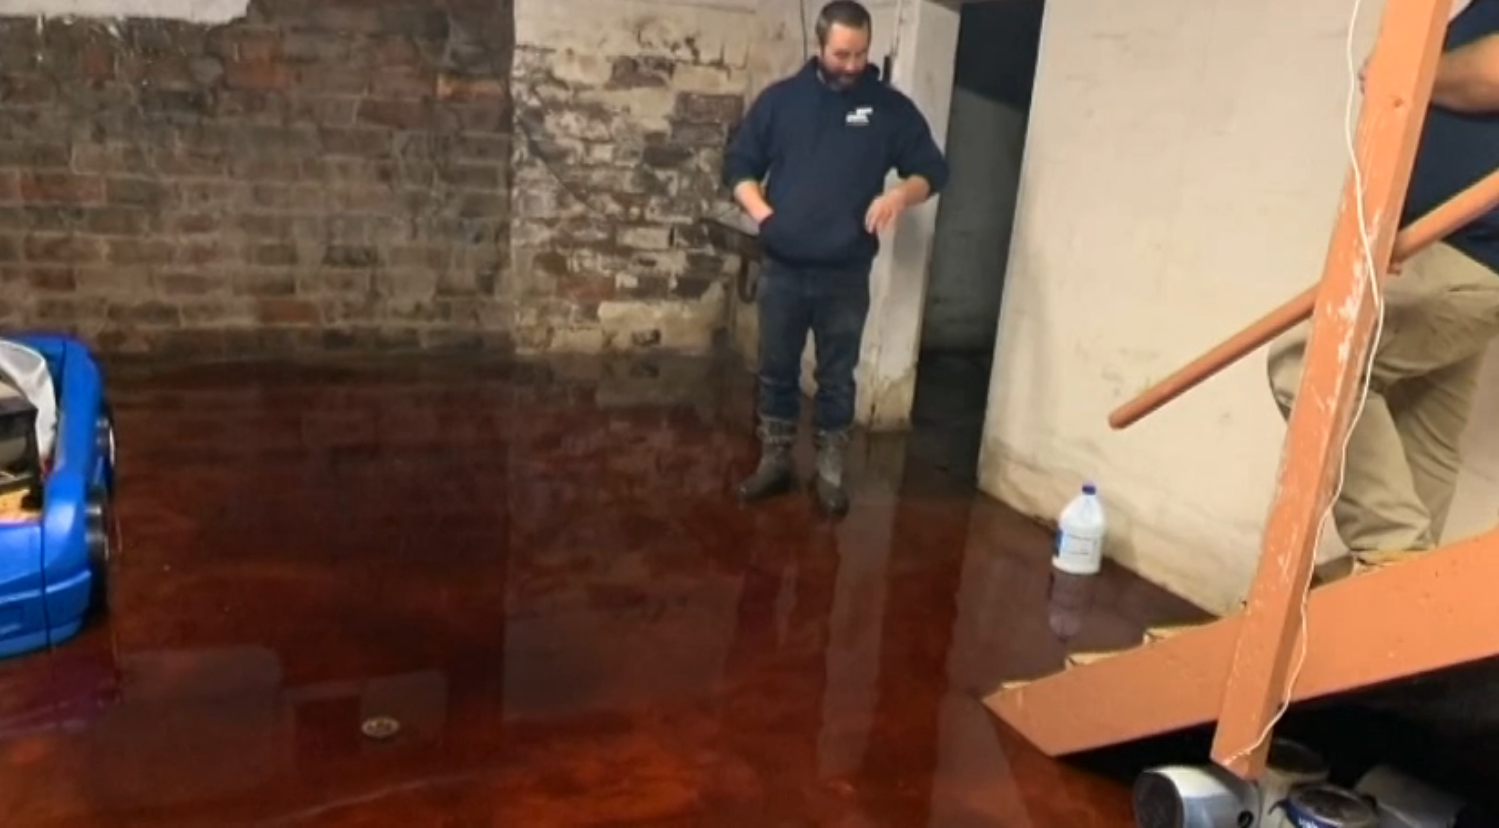 Home's basement filled with nearly 5 inches of animal blood as a result of drainage from a meat locker next door (CNN Newsource via WHO-DT)